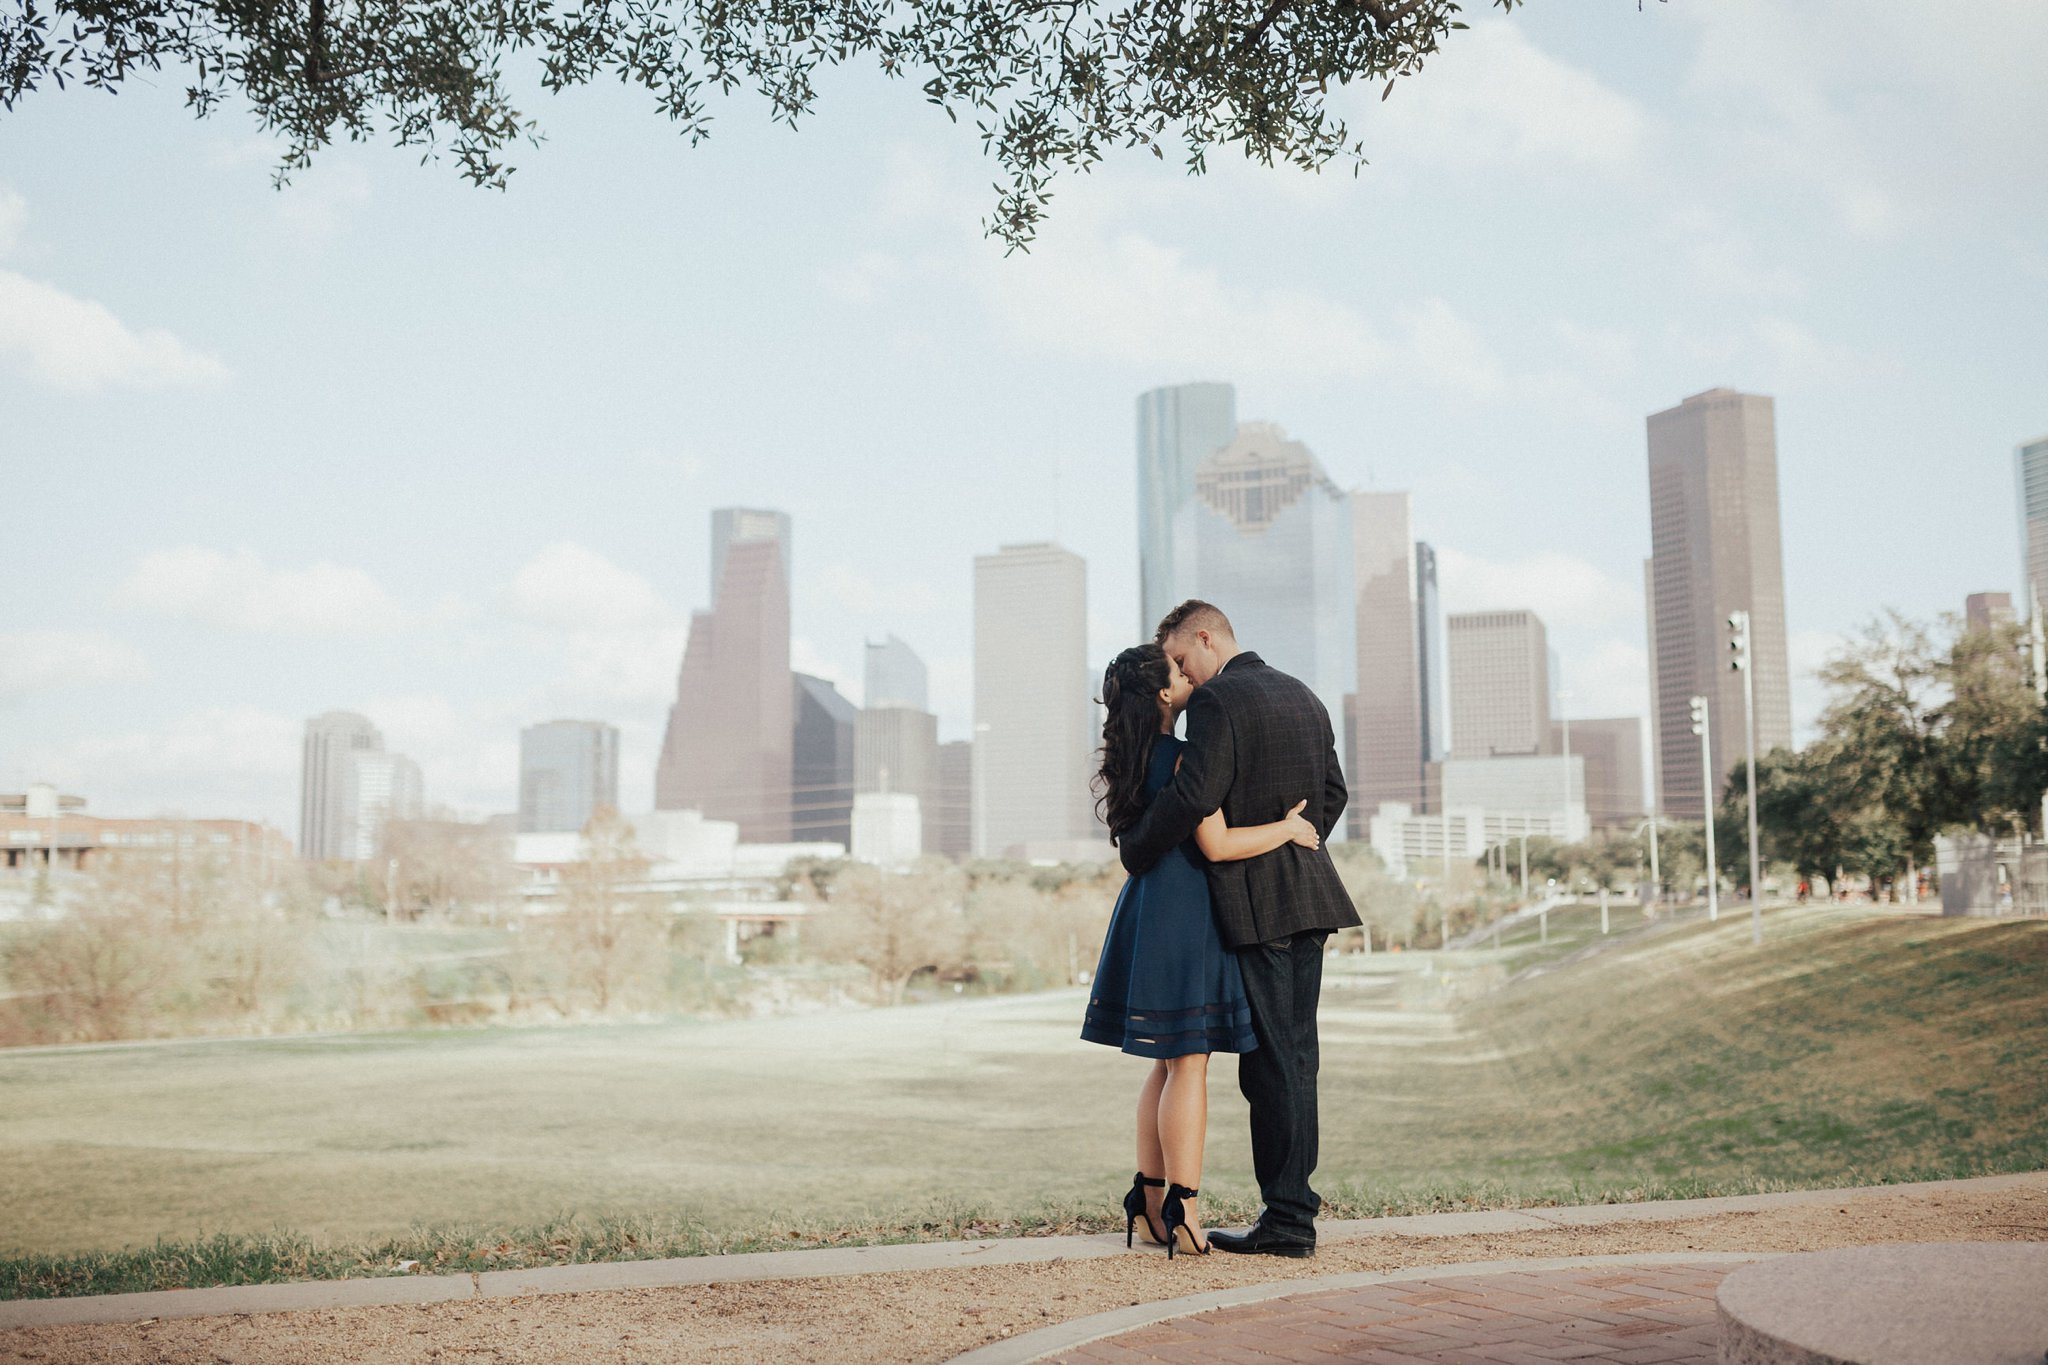 Ashley_and_Kyle___Downtown_Houston_Engagement_Session_2133-1.jpg